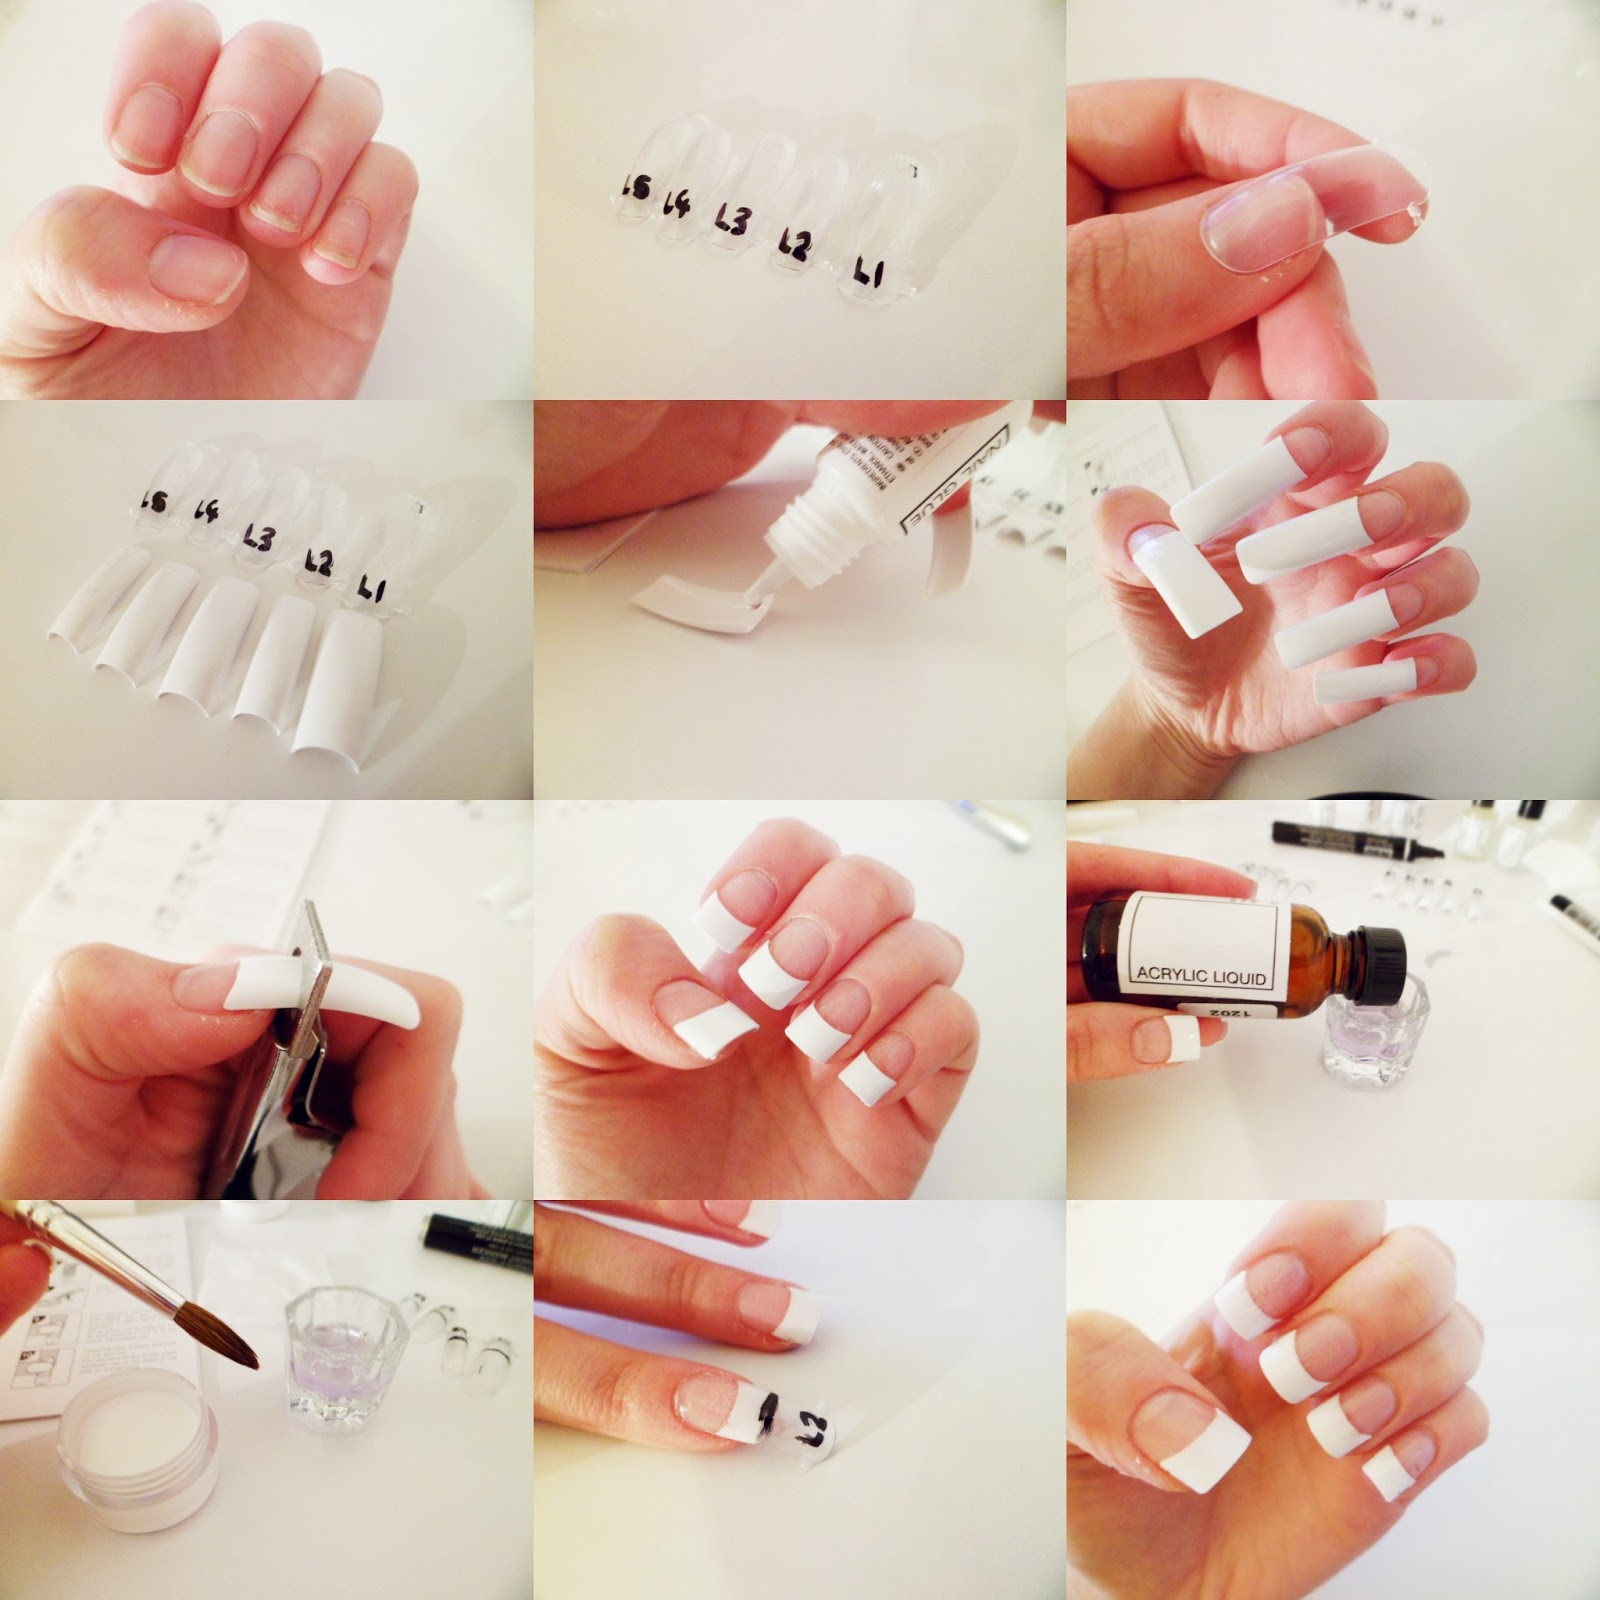 How To Put Nail Polish On Your Nails